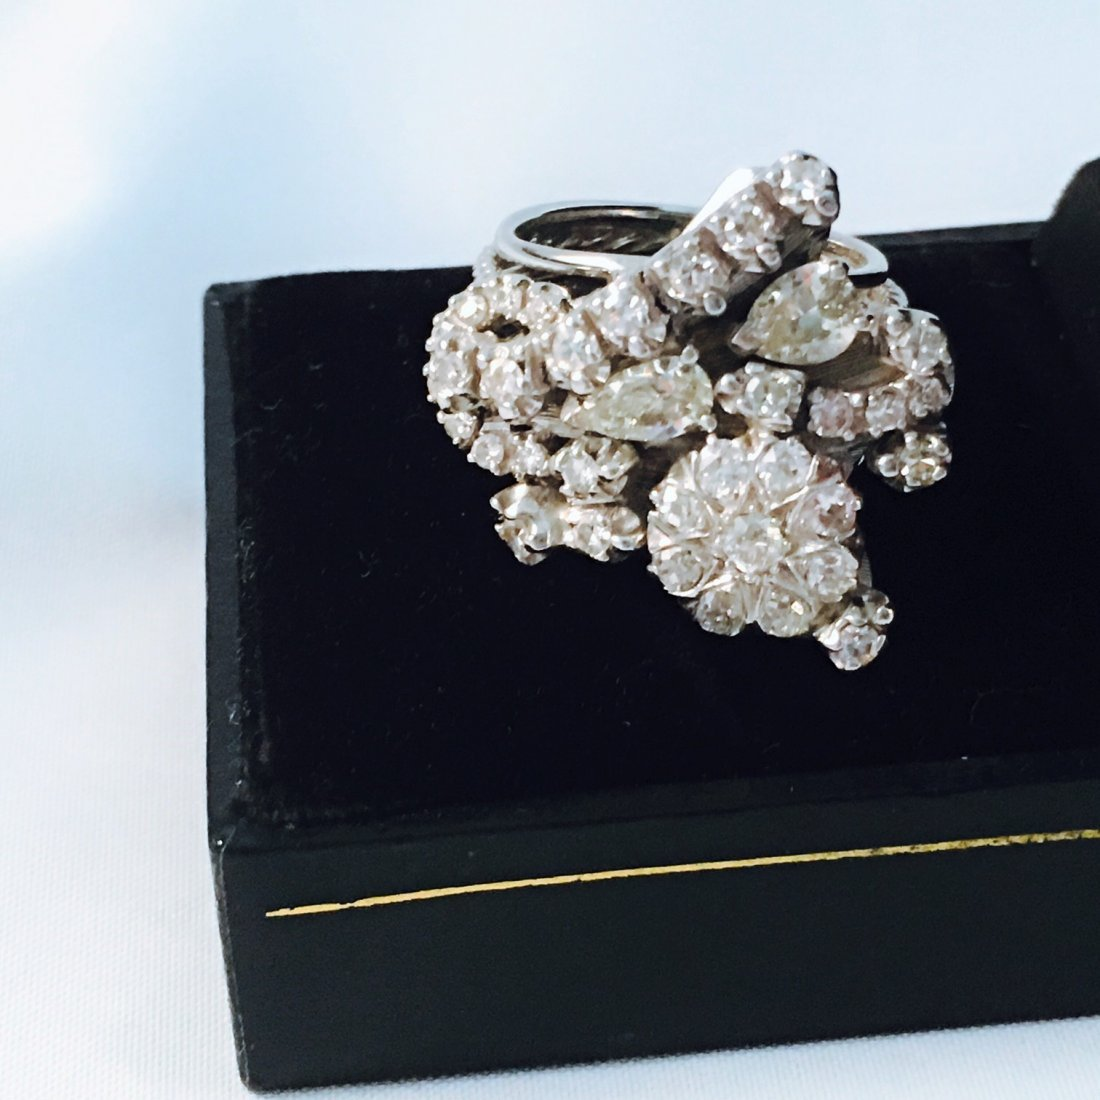 3 ct HIGH QUALITY Diamond Cluster Ring